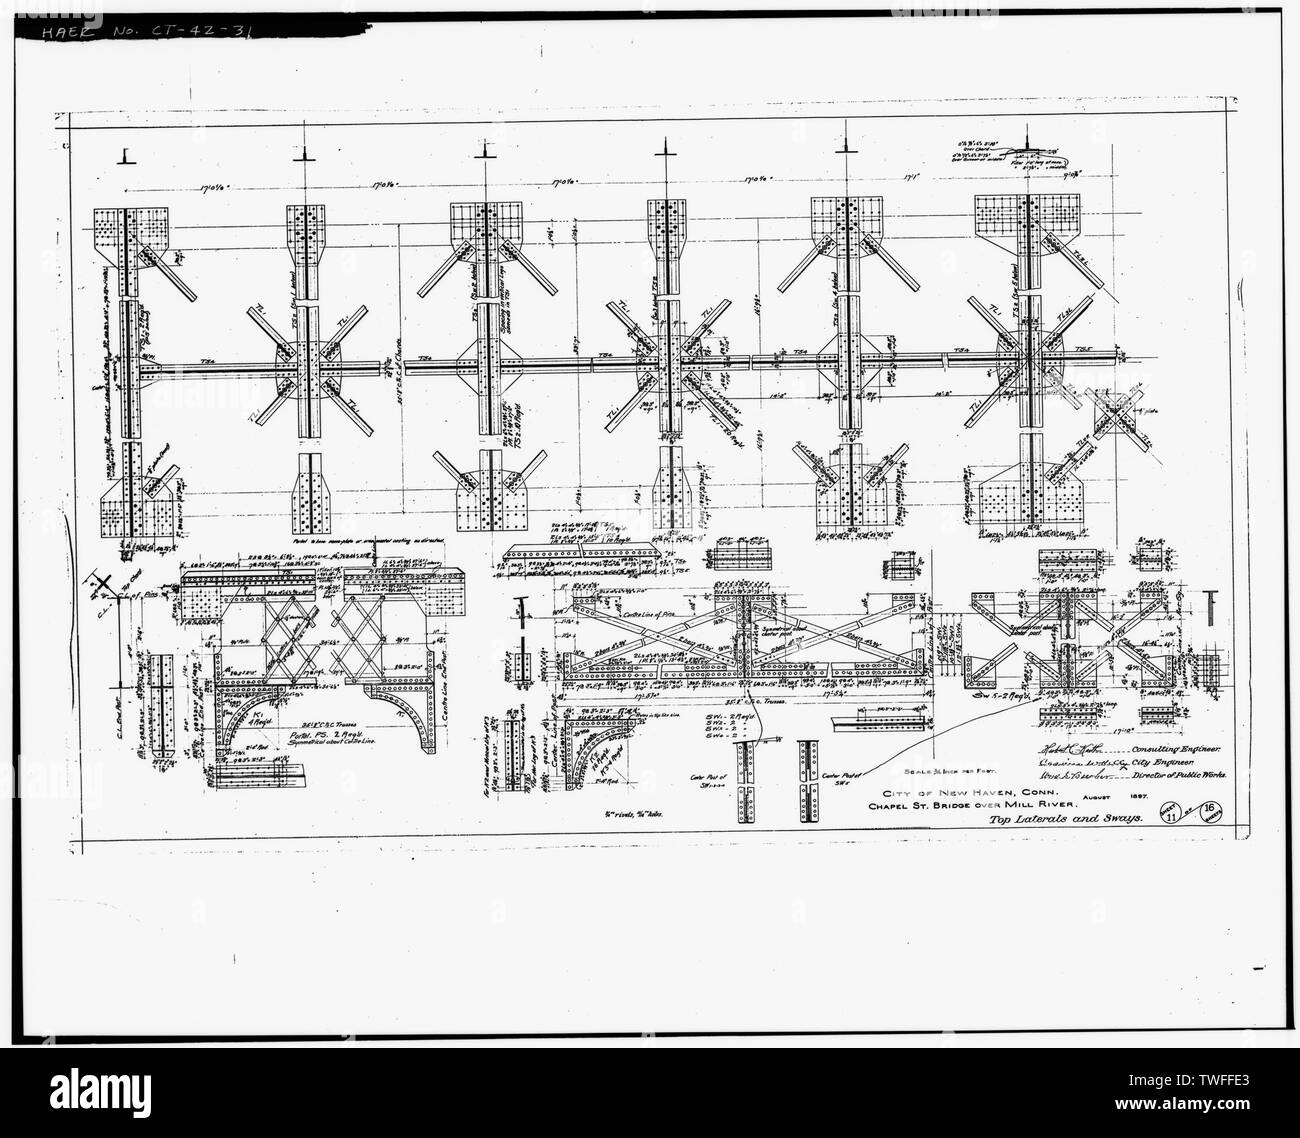 PLAN SHEET - TOP LATERALS AND SWAYS (1897) - Chapel Street Swing Bridge, Spanning Mill River on Chapel Street, New Haven, New Haven County, CT - Stock Image